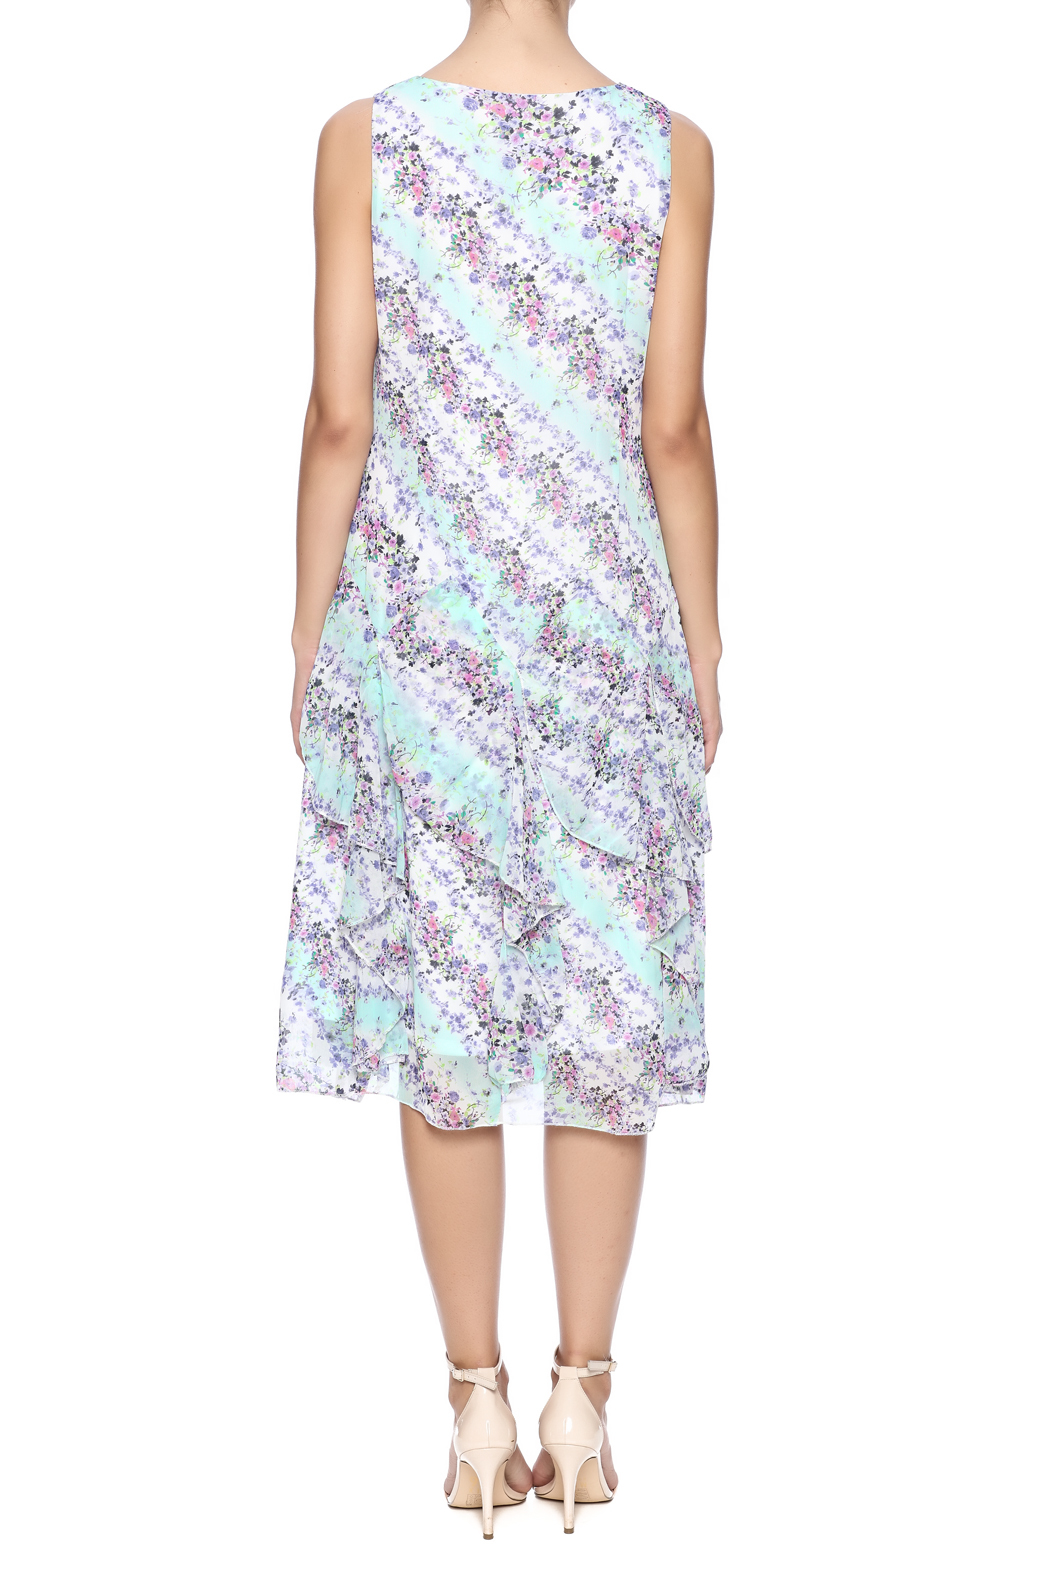 Nina Leonard Two Piece Floral Dress - Back Cropped Image